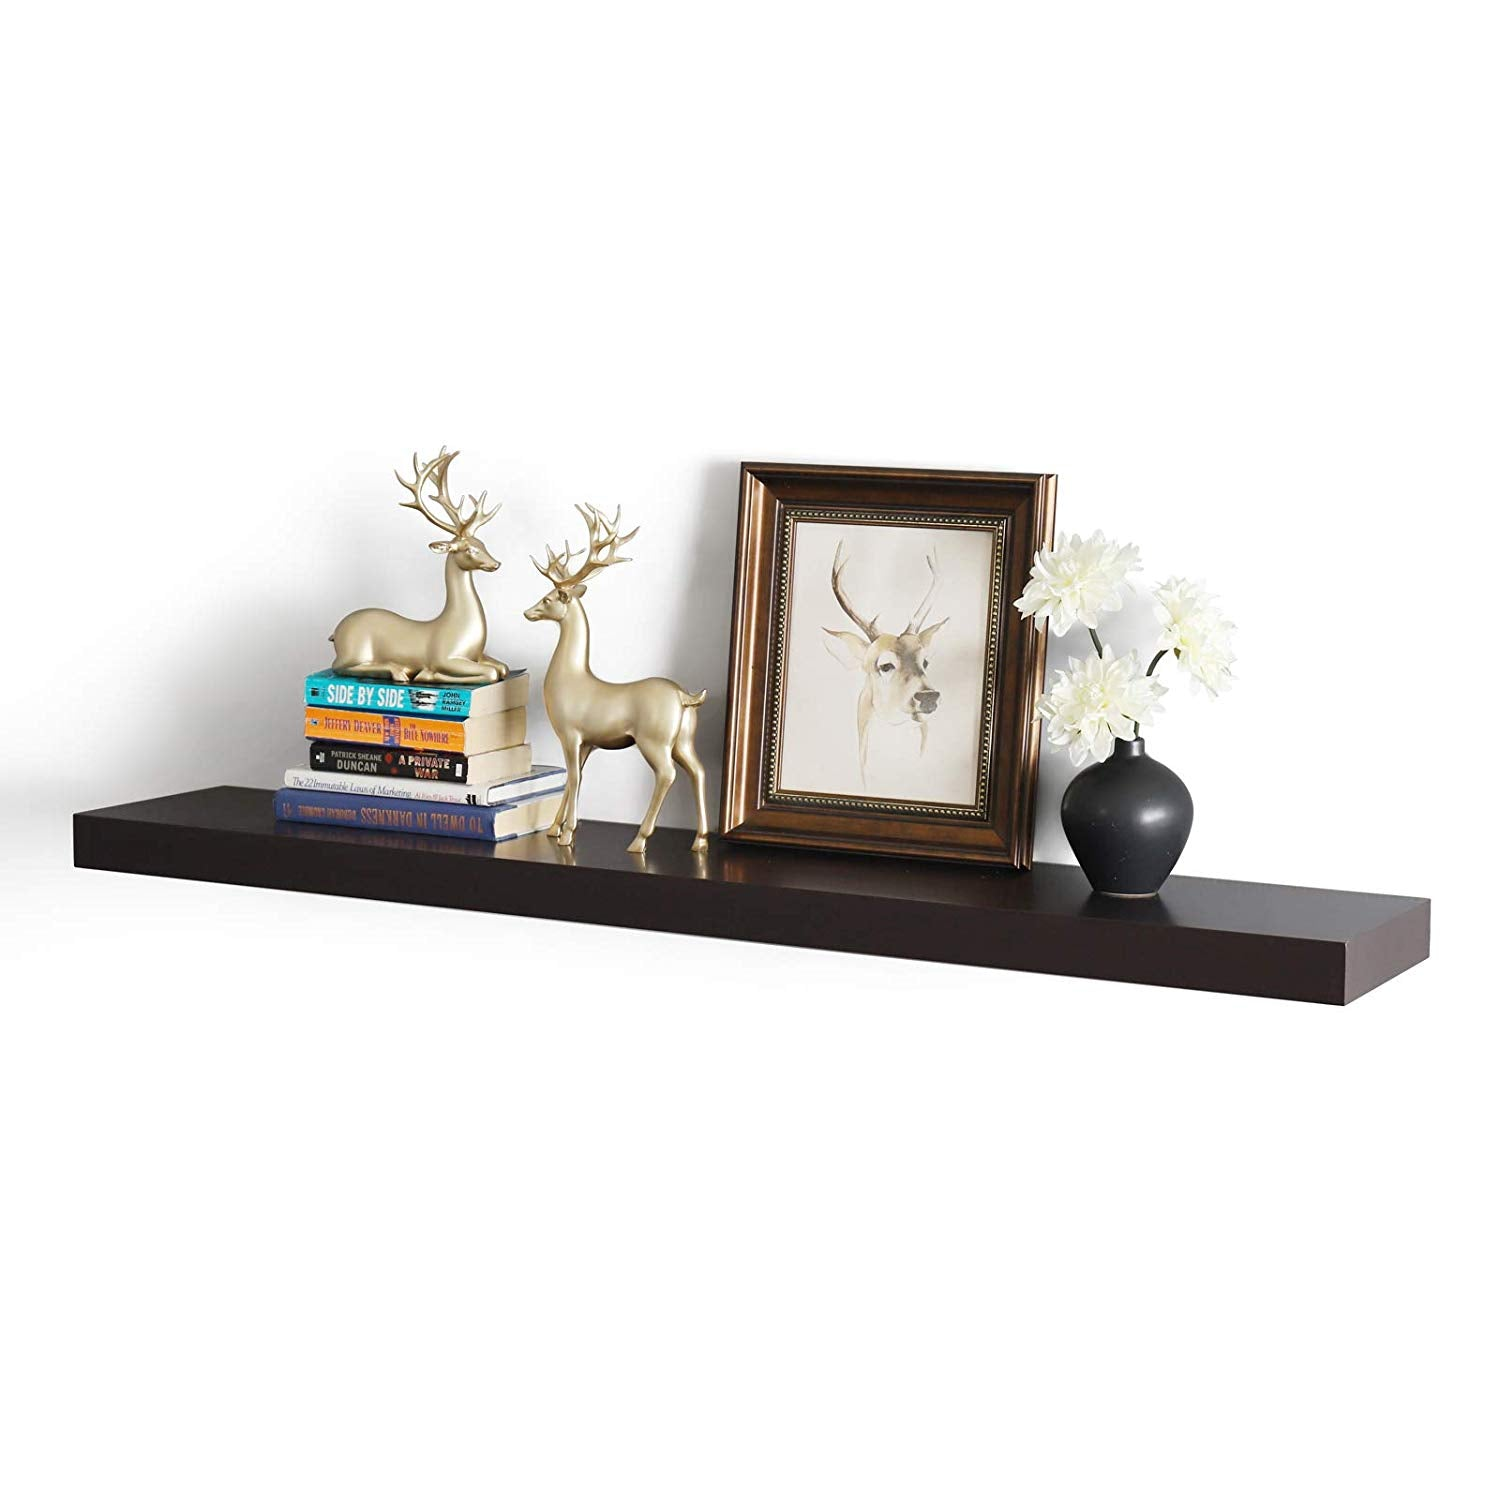 New Chicago Floating Wall Shelf, 48 inch, WellandStore